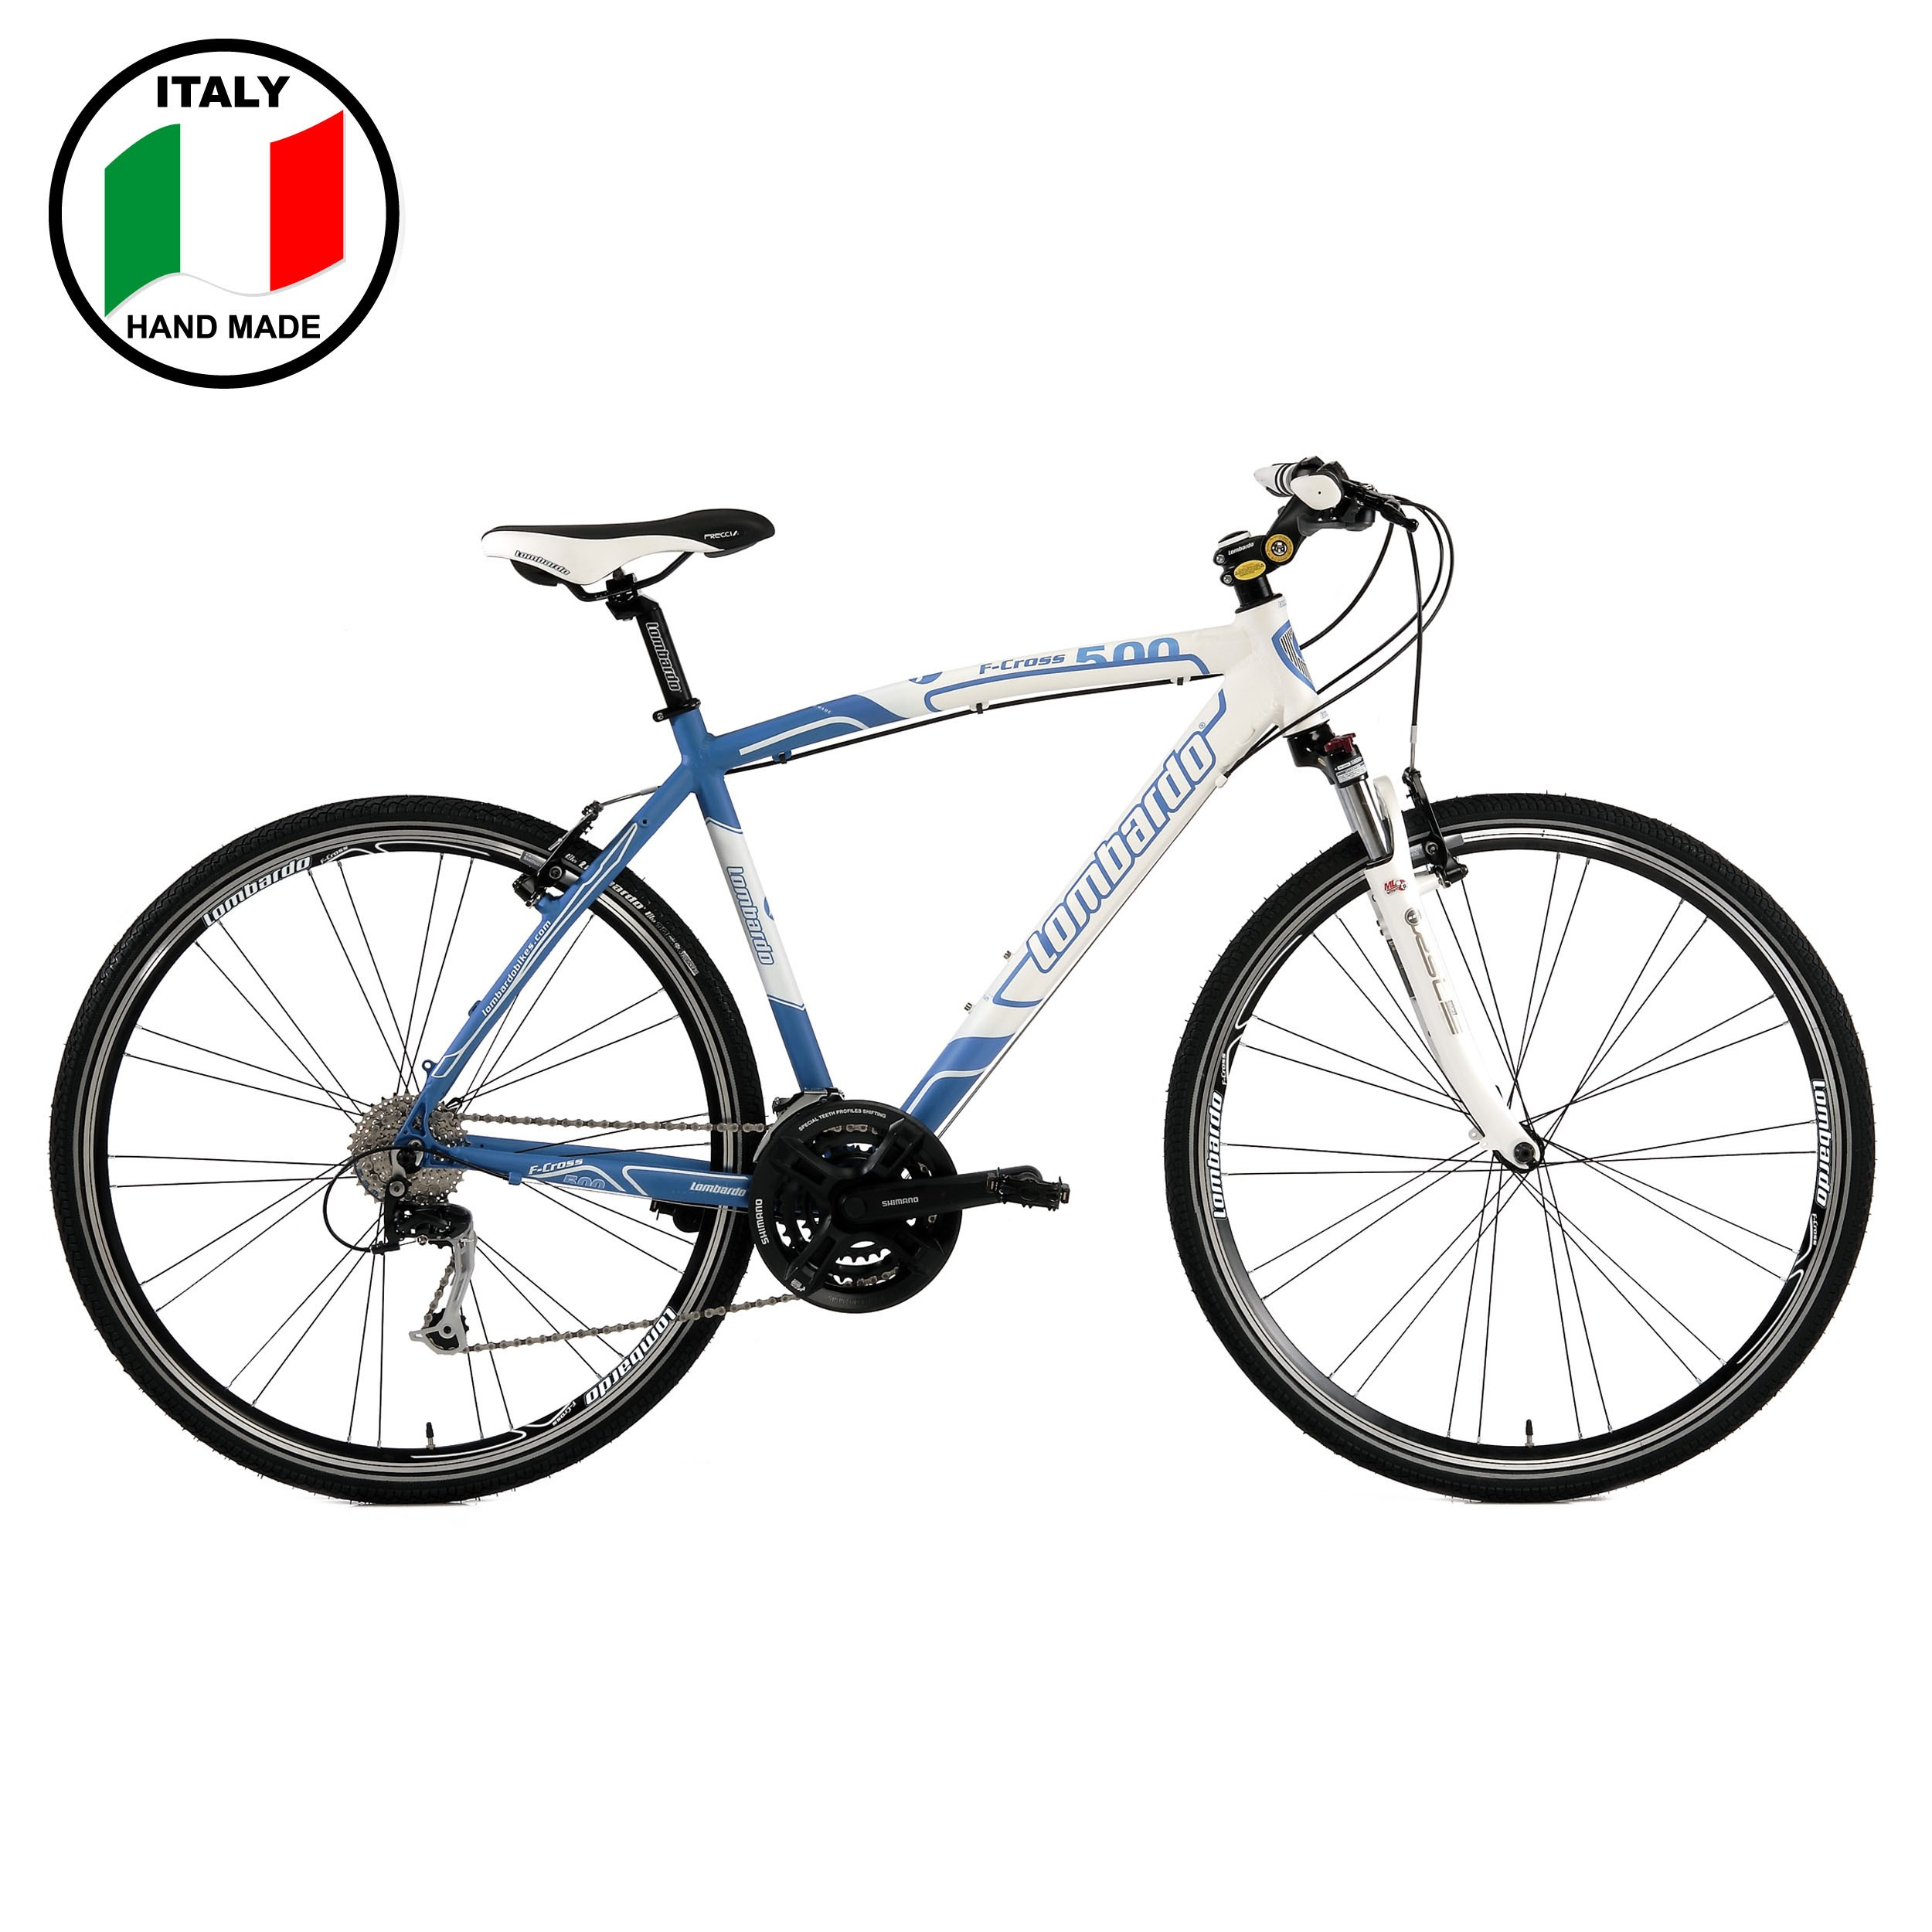 Lombardo F-Cross 500 Mens 28 inch Bike- Blue and White